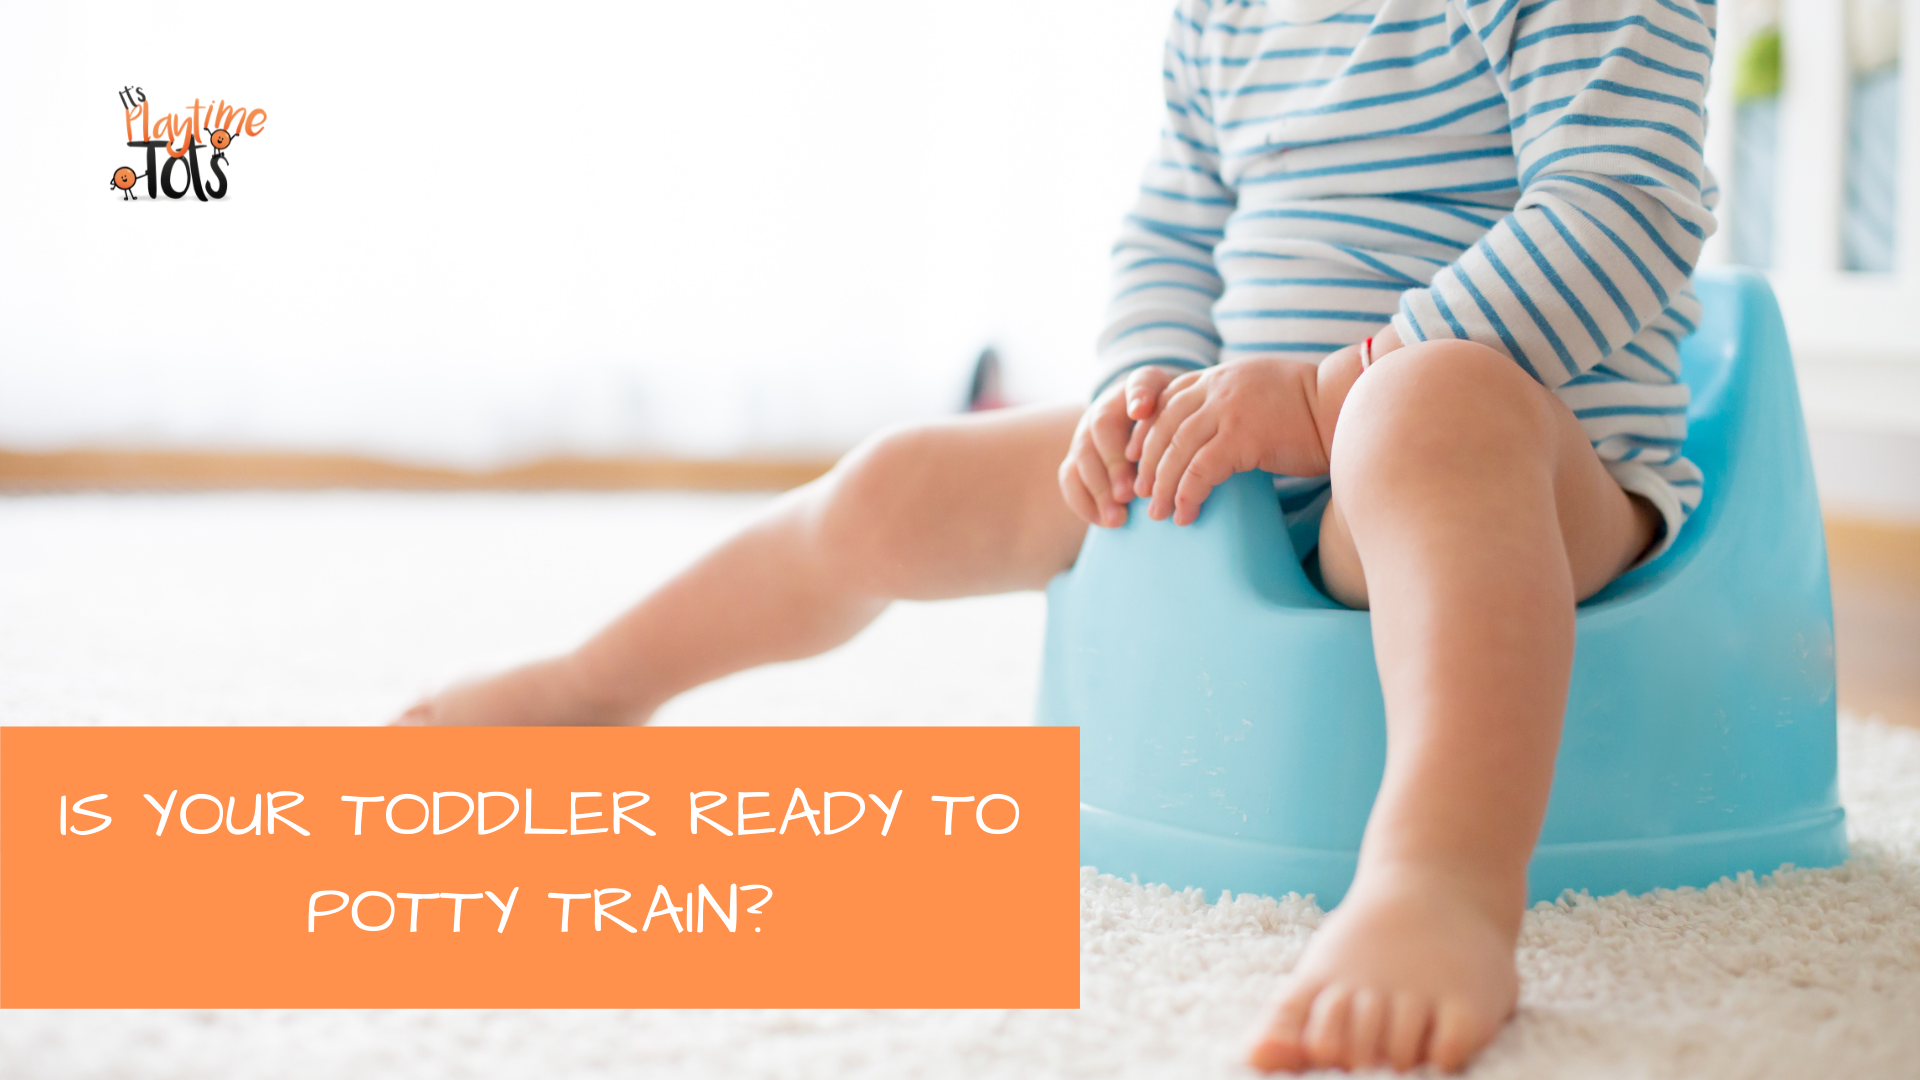 Is Your Toddler Ready To Potty Train?